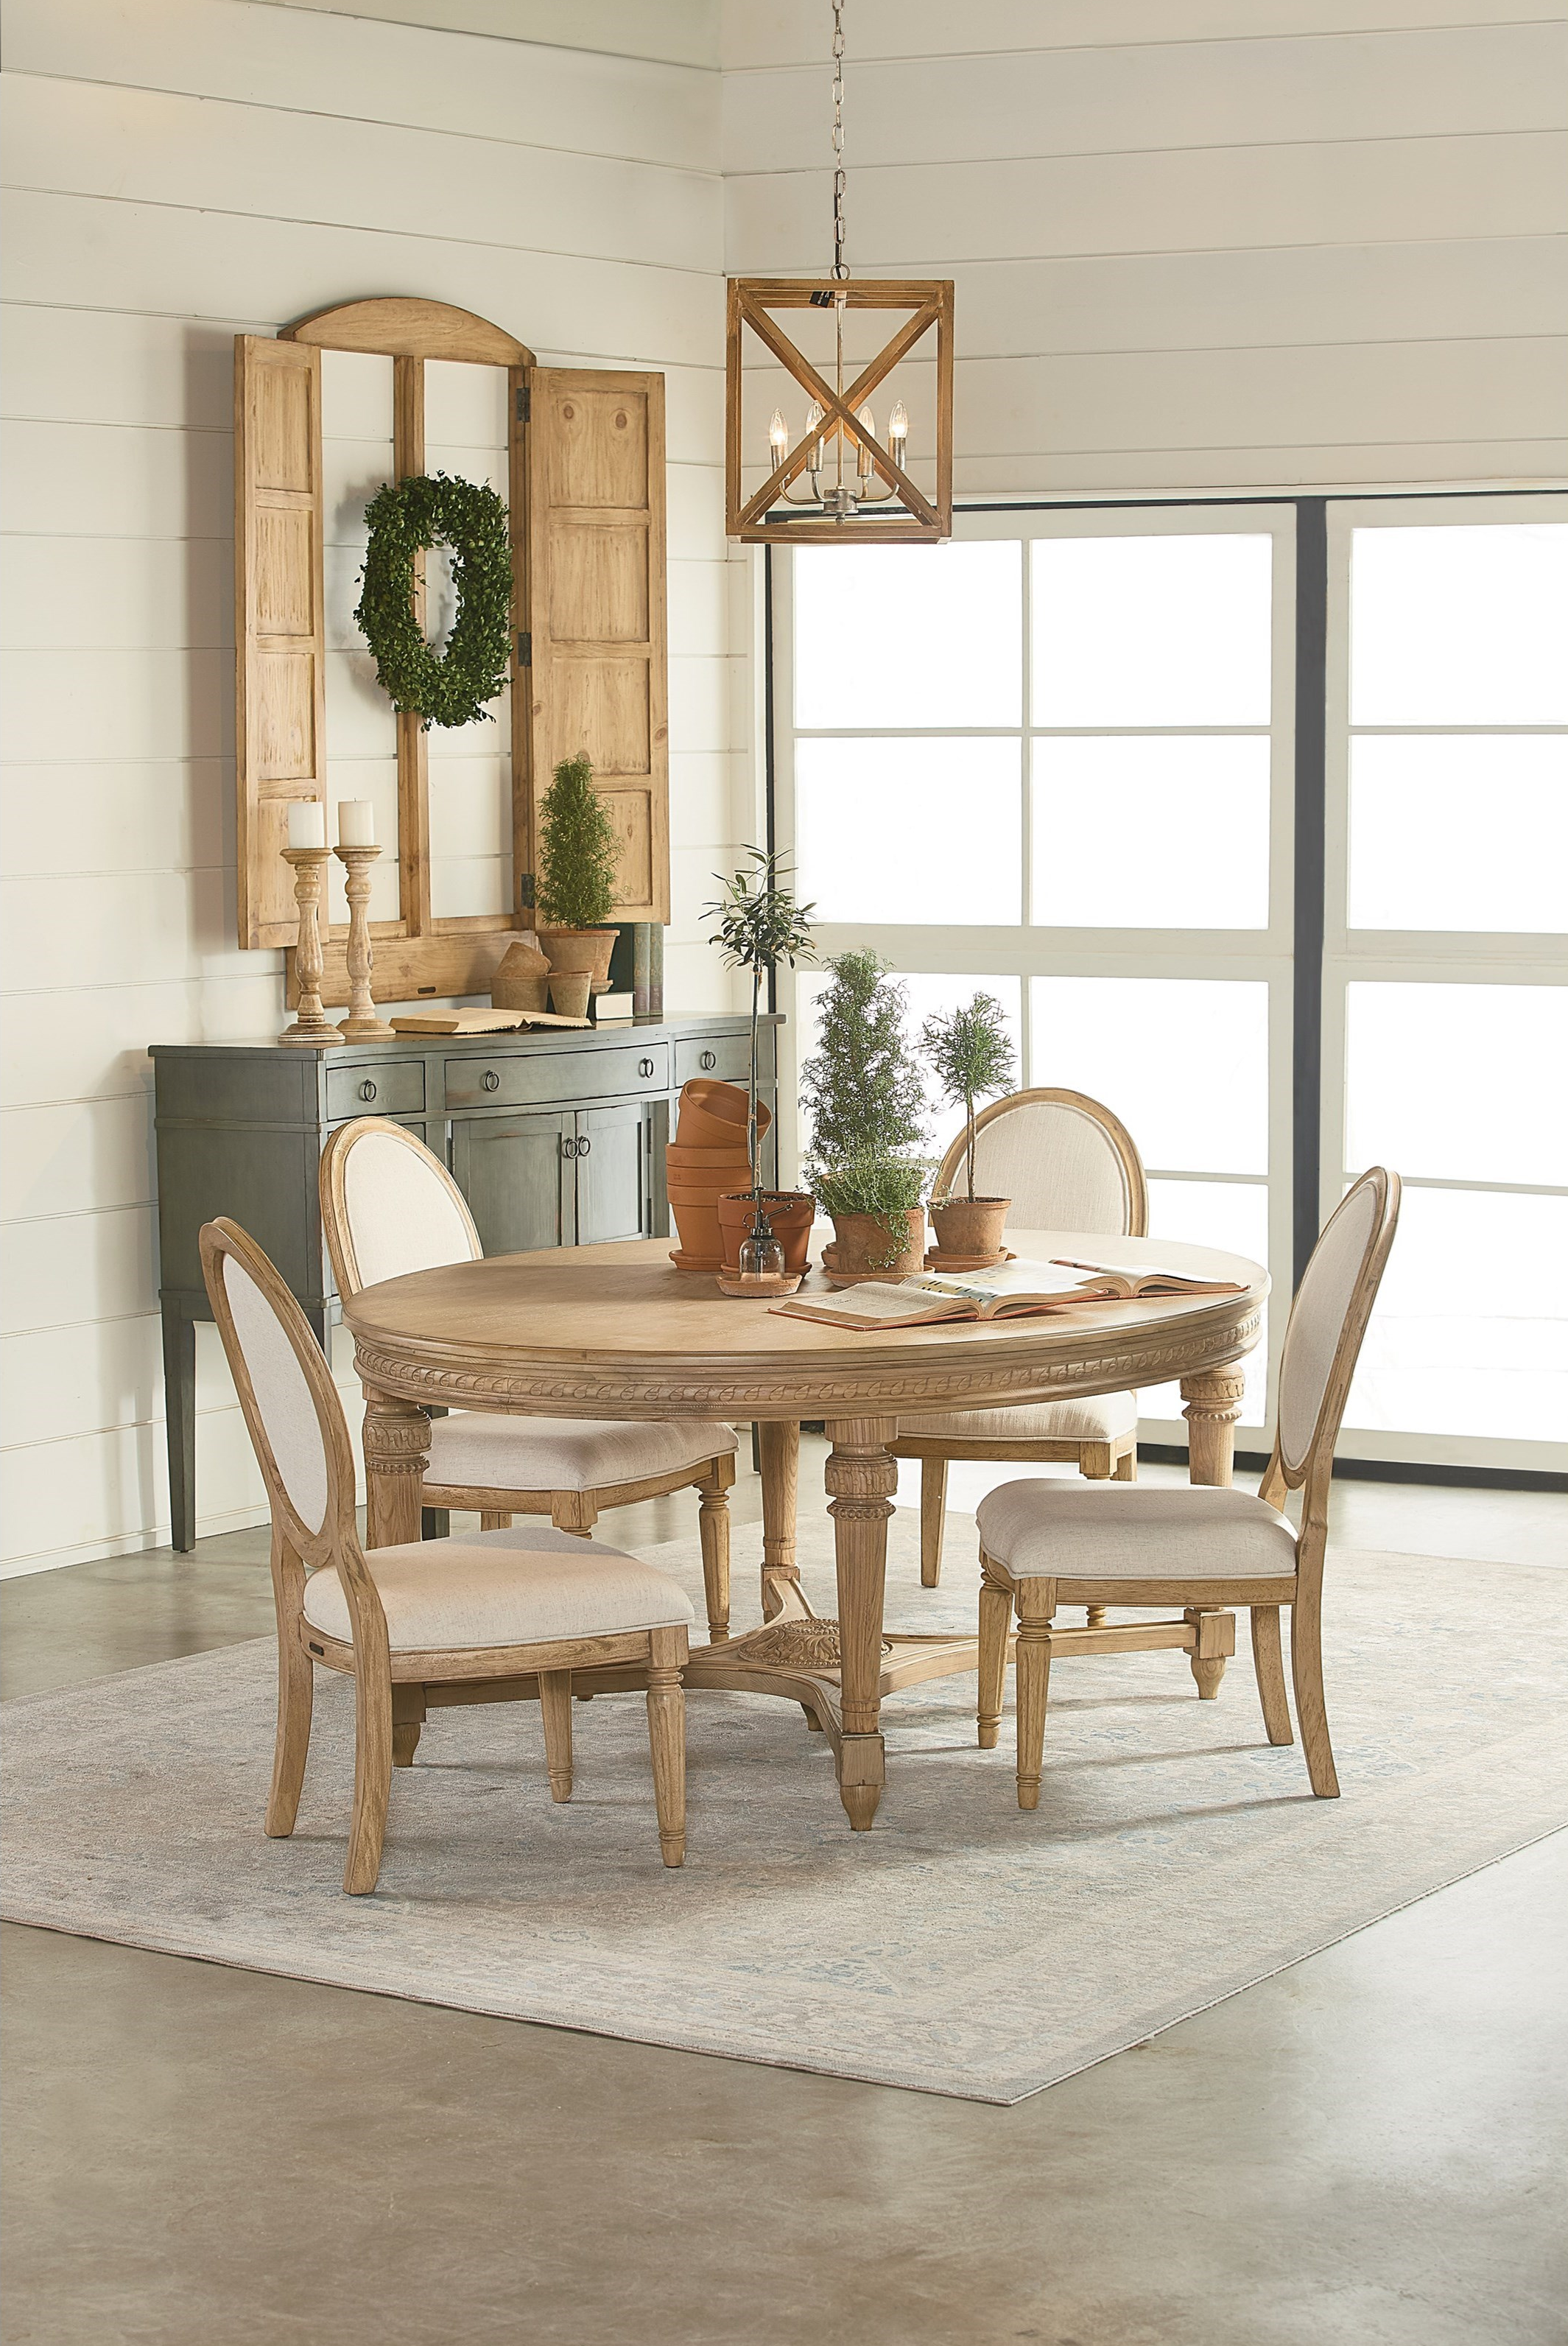 Magnolia Home By Joanna Gaines Traditional Casual Dining Room